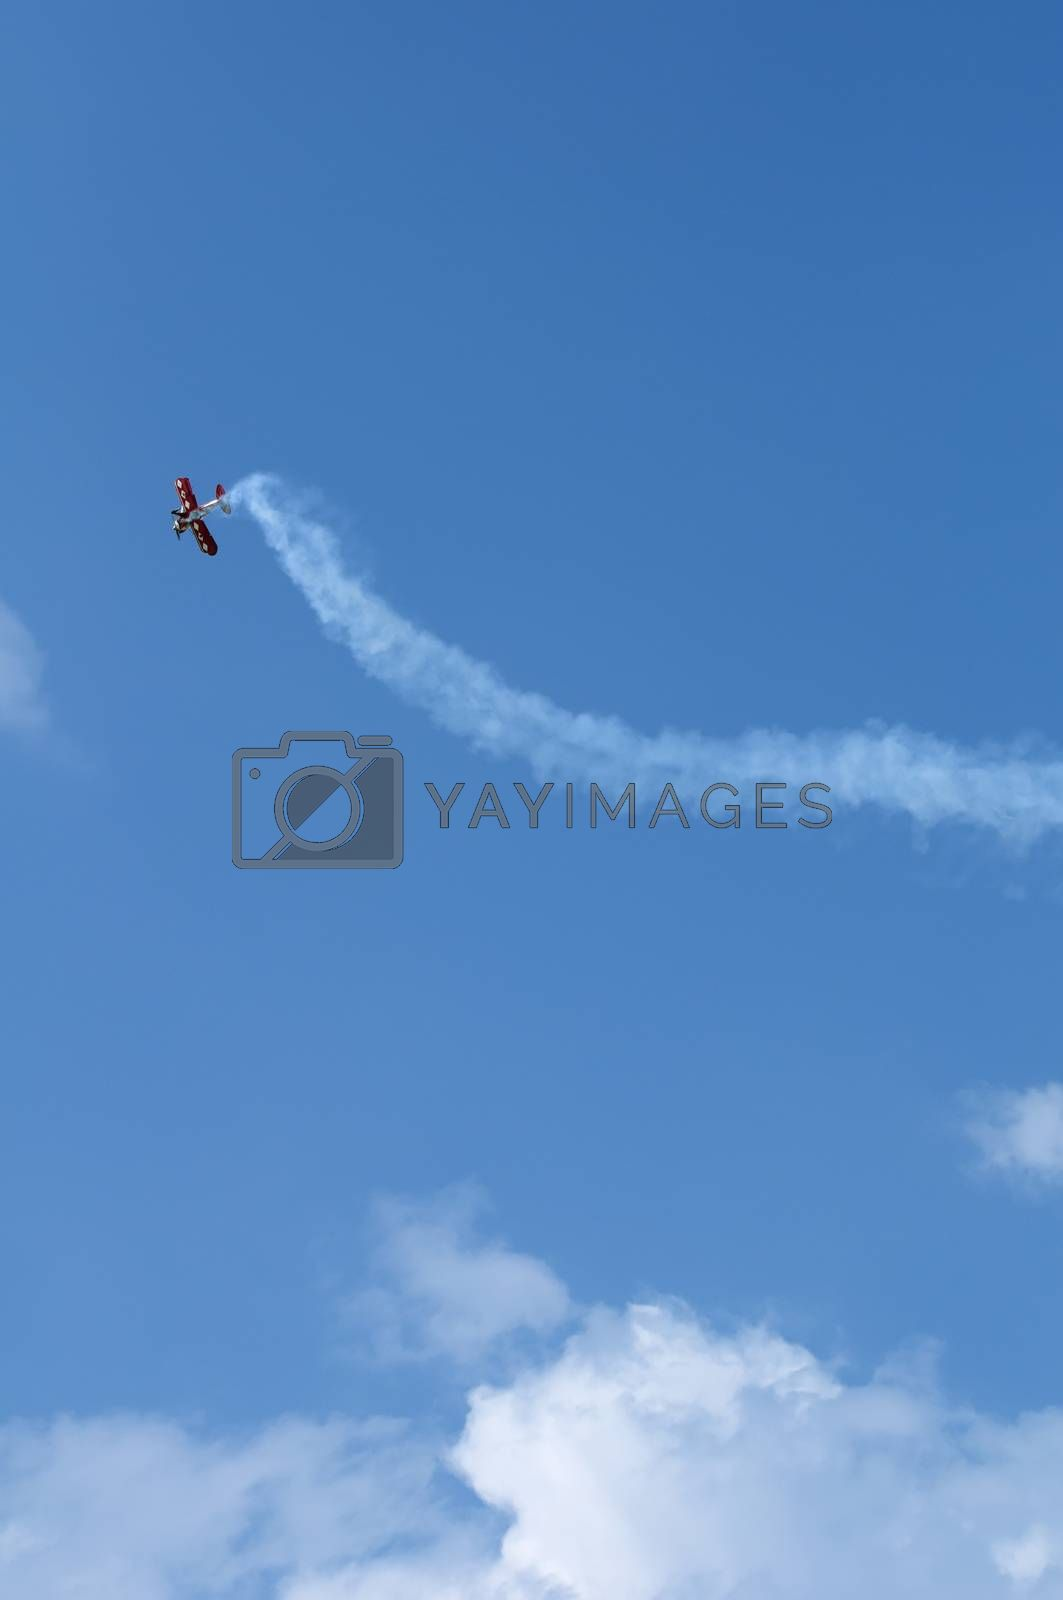 Plane doing Loops on blue cloudy sky